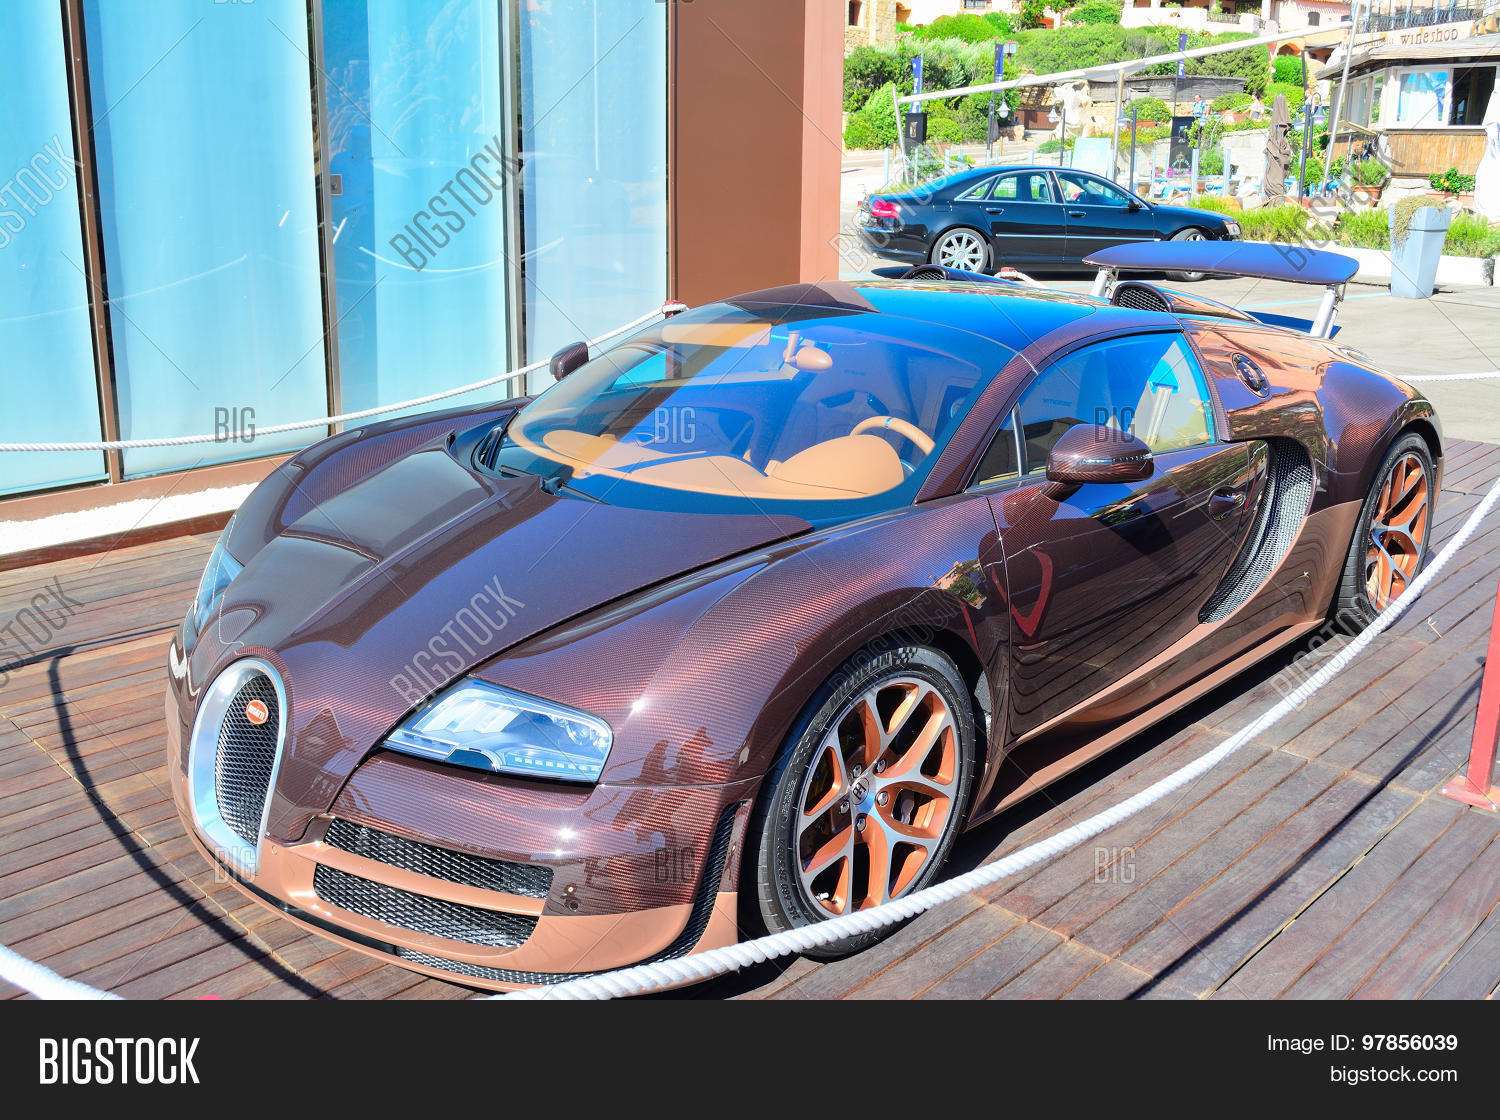 bugatti veyron rembrandt porto image photo bigstock. Black Bedroom Furniture Sets. Home Design Ideas